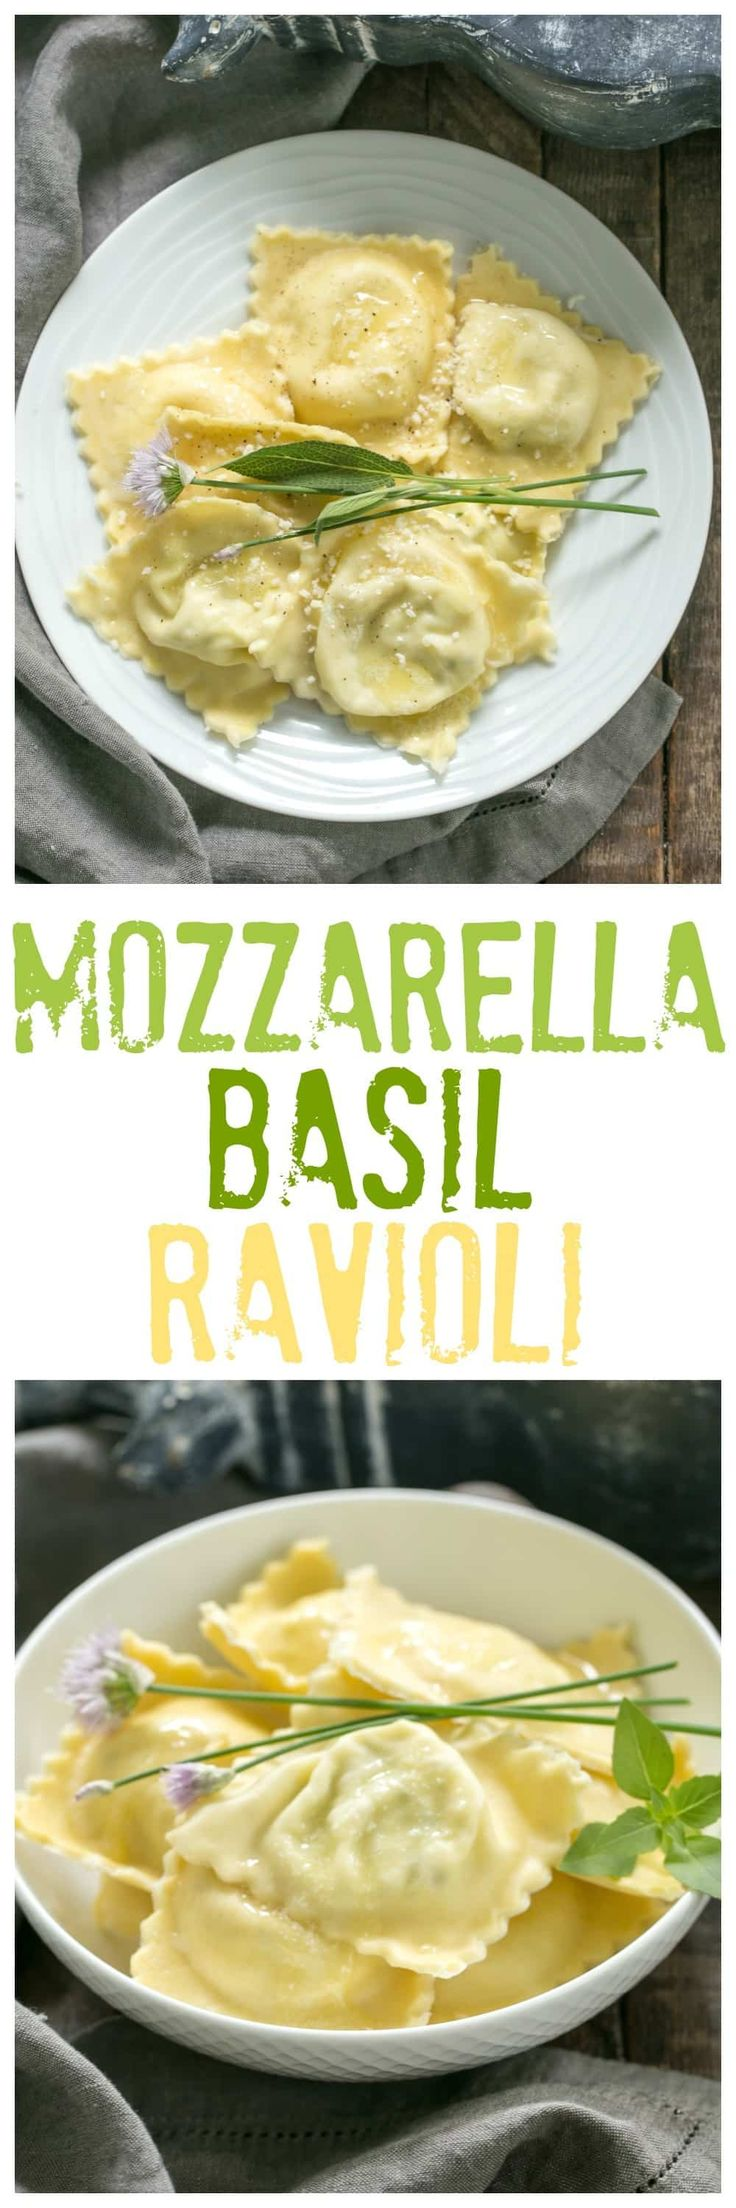 Mozzarella, Basil, Parmigiano-Reggiano Ravioli with Butter Sage Sauce | A simple, delectable egg pasta filled with mozzarella and basil! @lizzydo